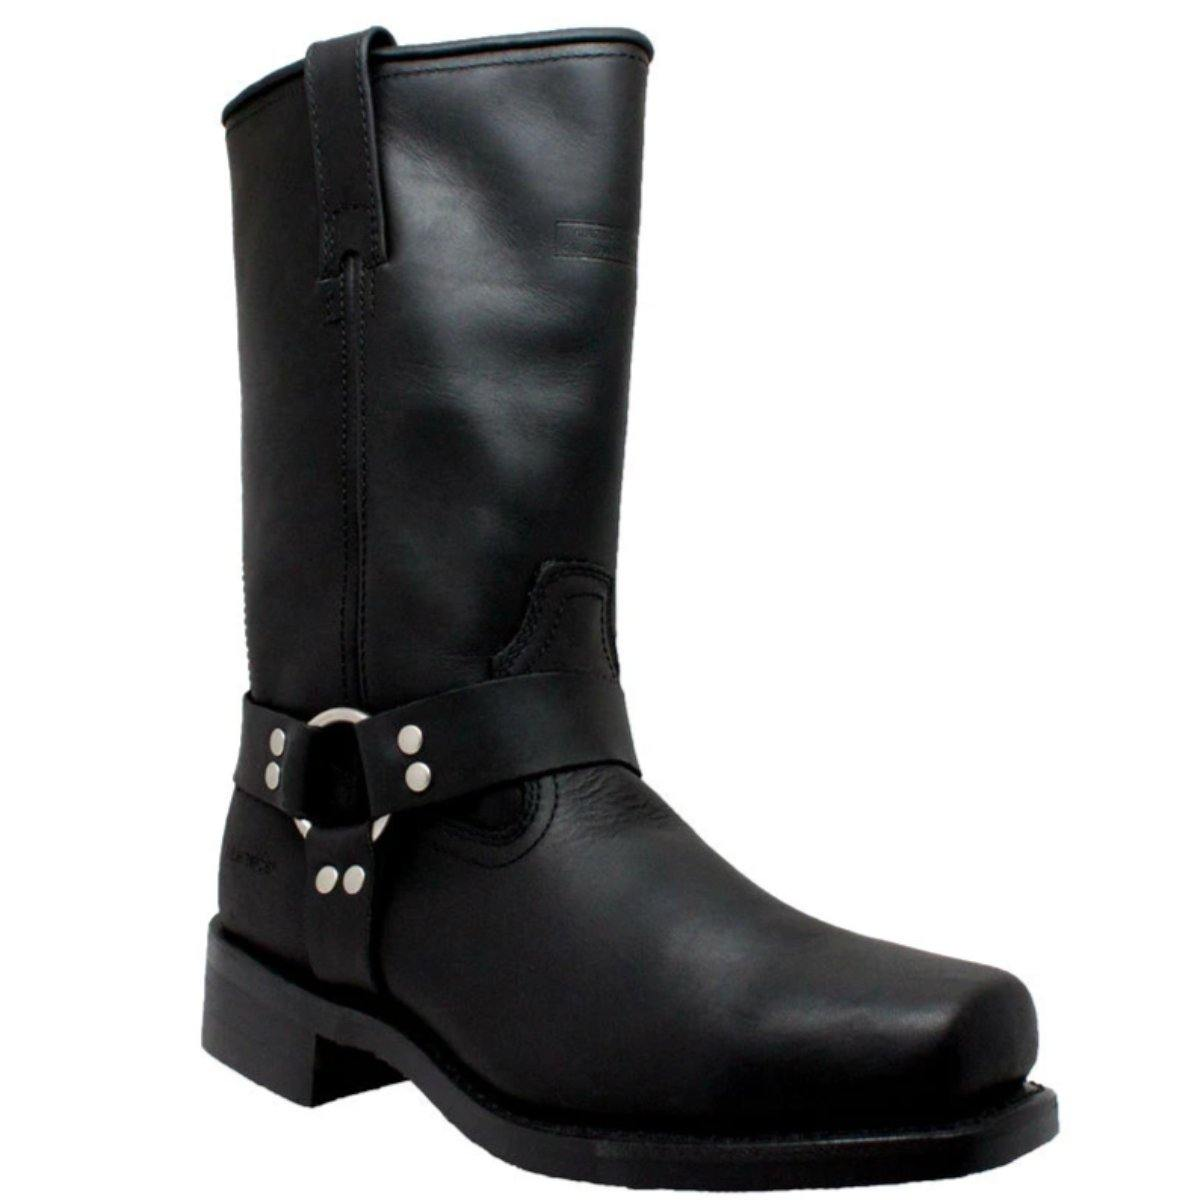 """Daniel Smart Men's 13"""" Harness Leather Boots with PU Cushioned Insole, Black"""